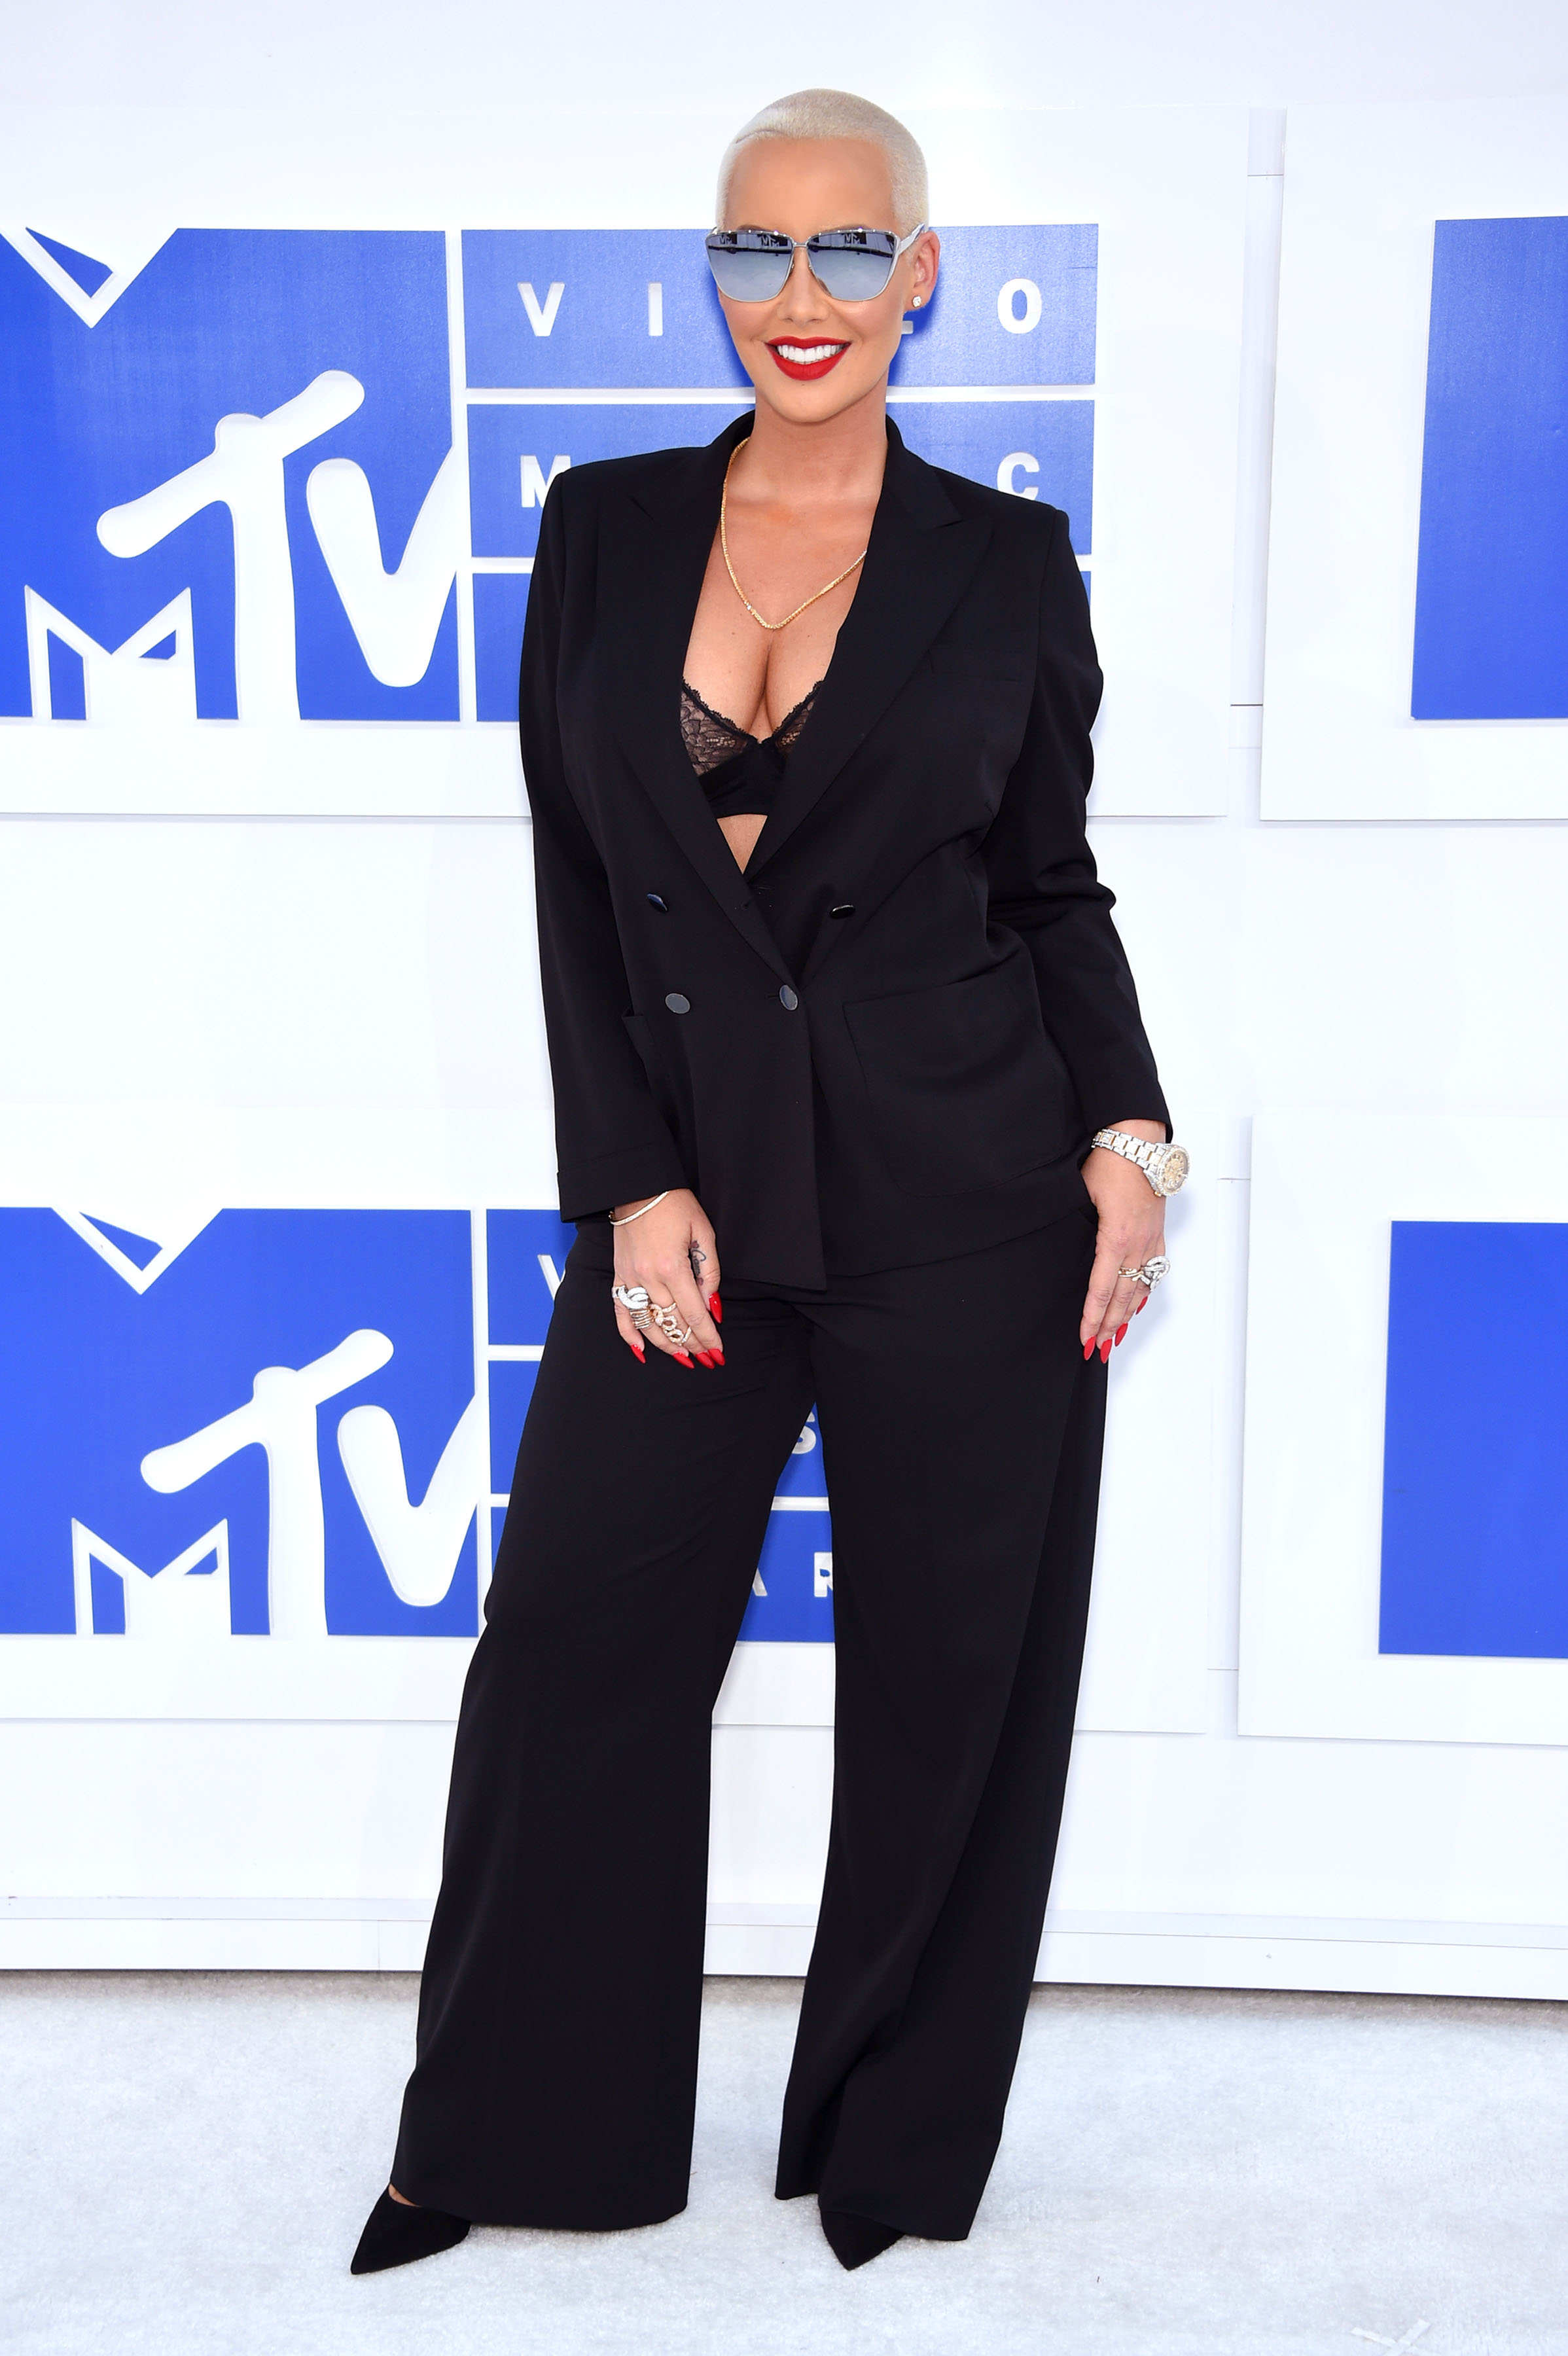 Amber Rose attends the 2016 MTV Video Music Awards at Madison Square Garden on Aug. 28, 2016 in New York City.